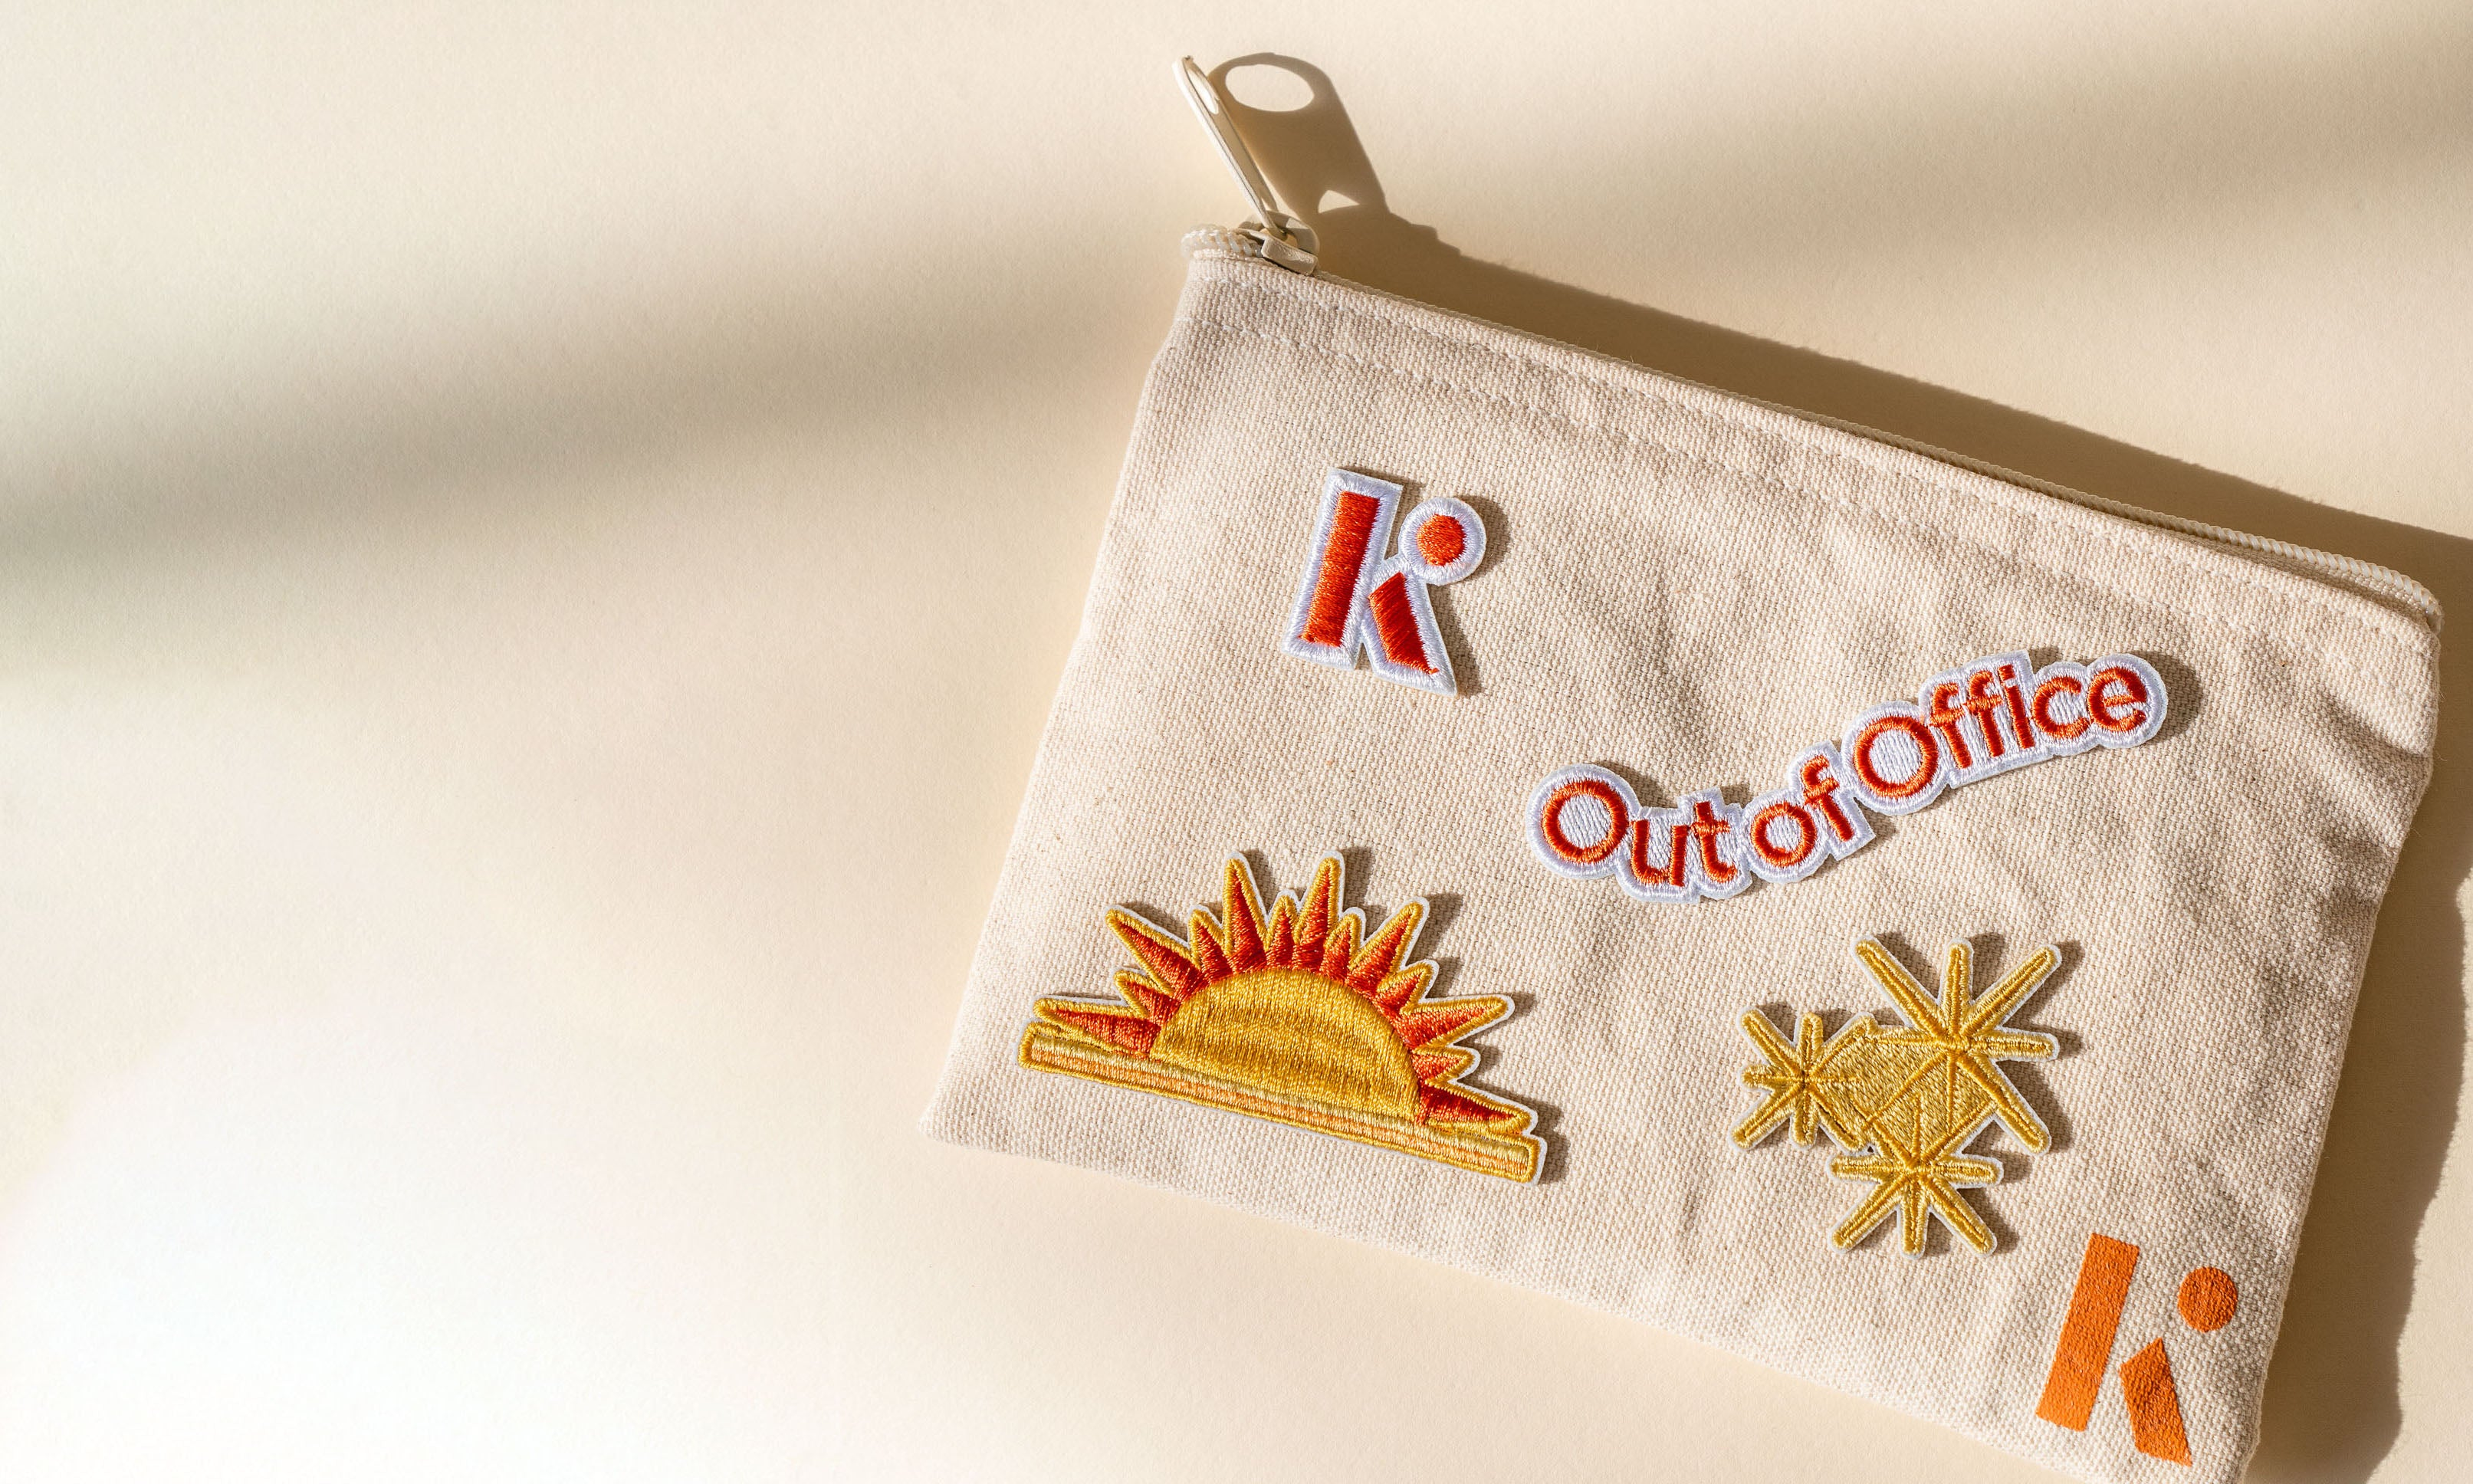 Brightly colored Kinfield patches adorn a beige-colored cotton zippered pouch.